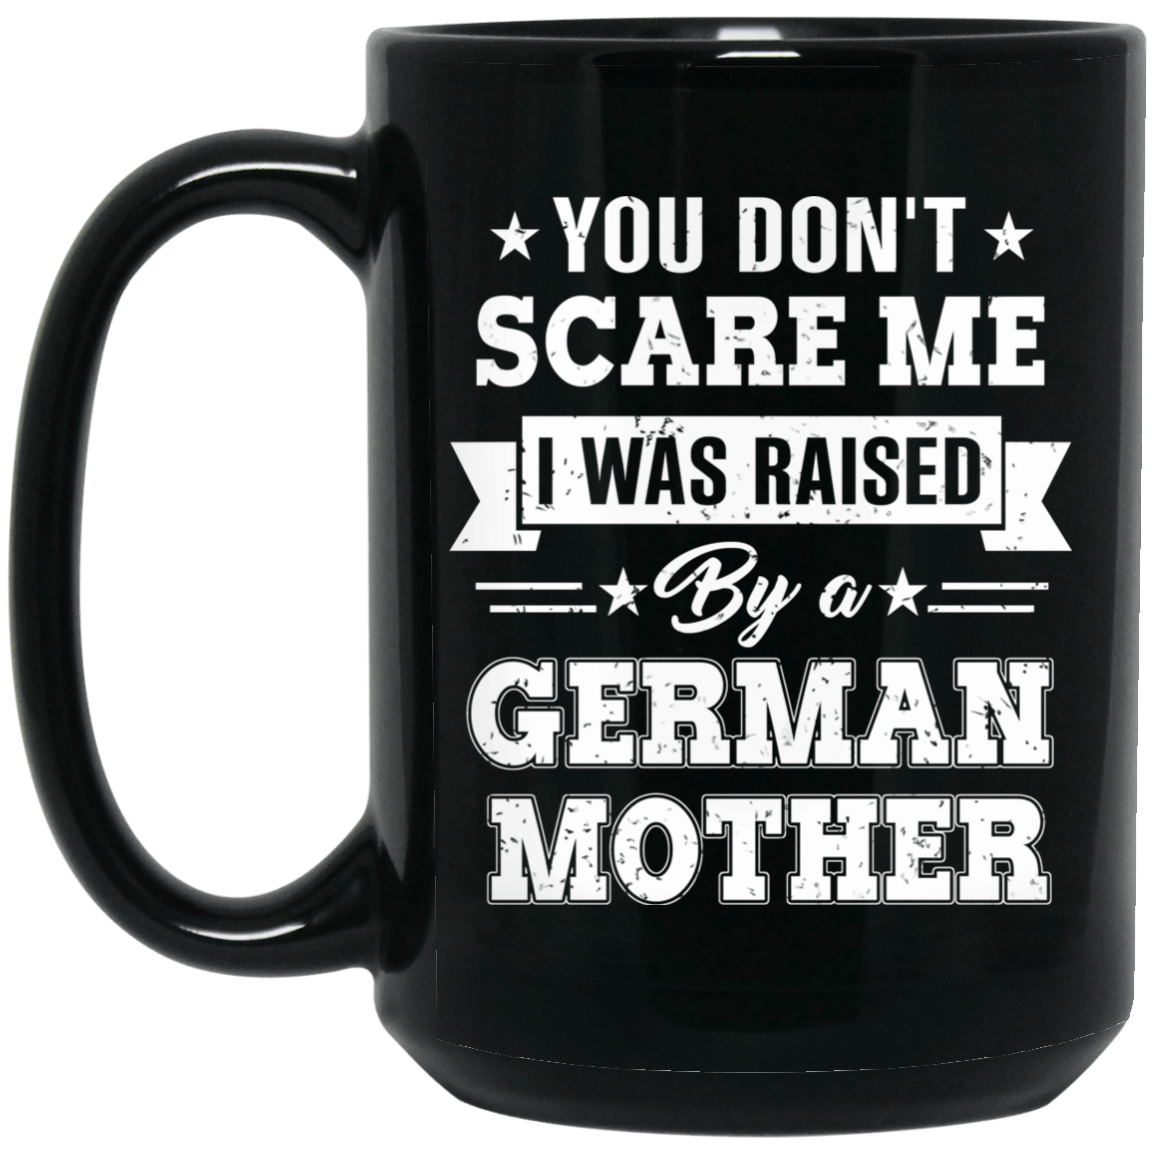 You Don't Scare Me I Was Raised By A German Mother Mug 1066-10182-72519624-49311 - Tee Ript